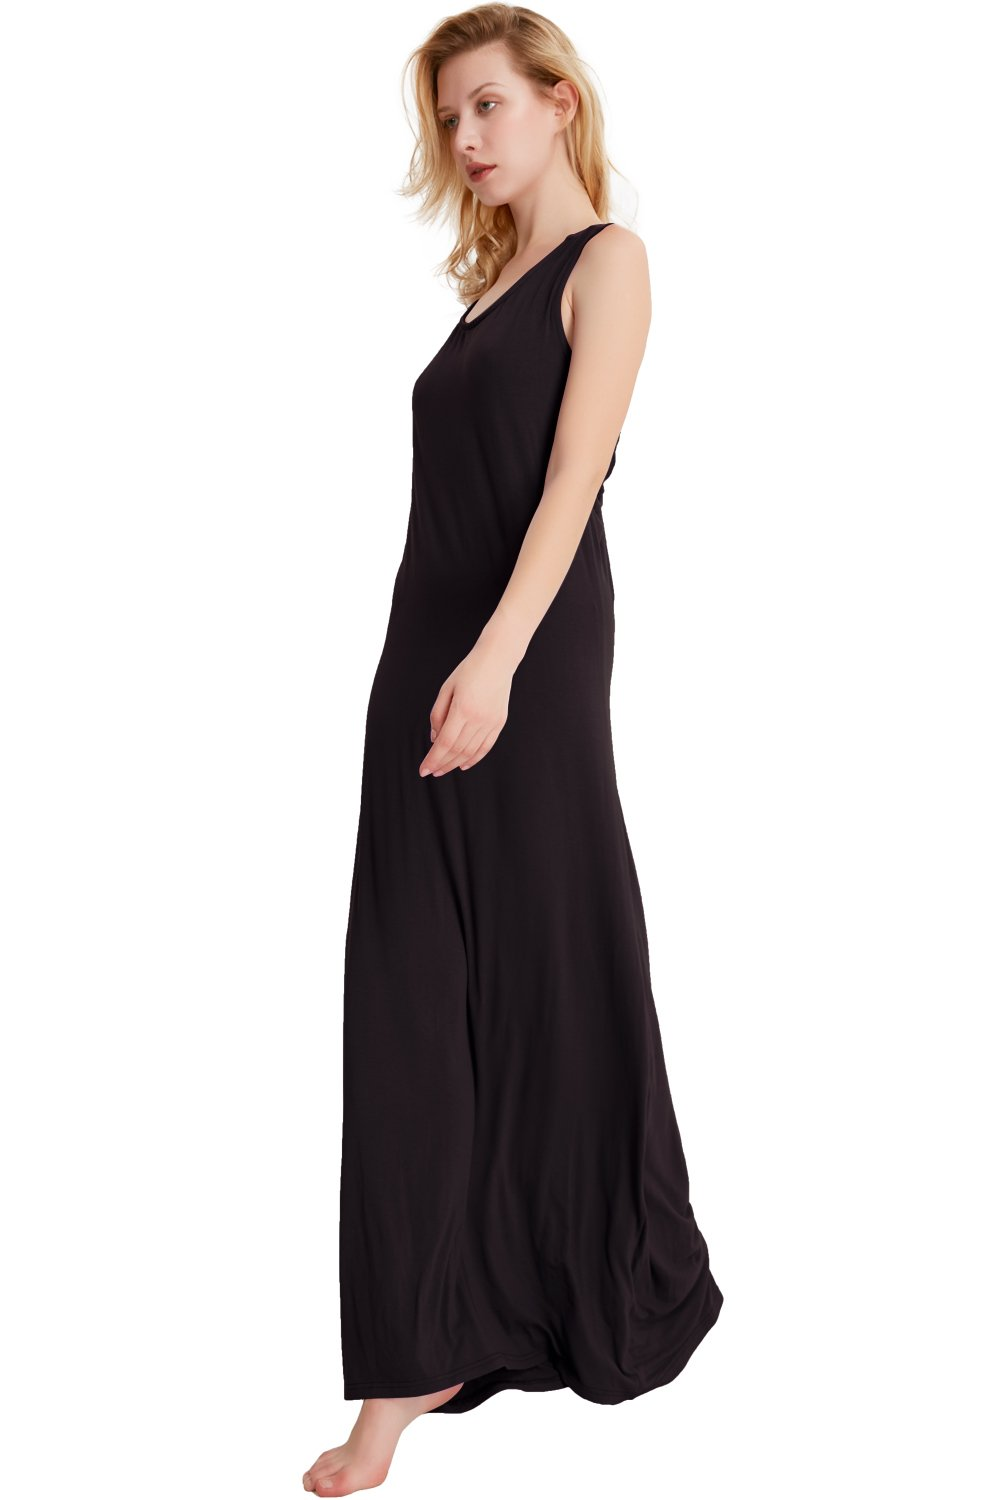 Jane Chen\'s Women\'s Round Neck Round Neck Sleeveless Sexy Backless Casual Maxi Dress (Black, XX-Large)